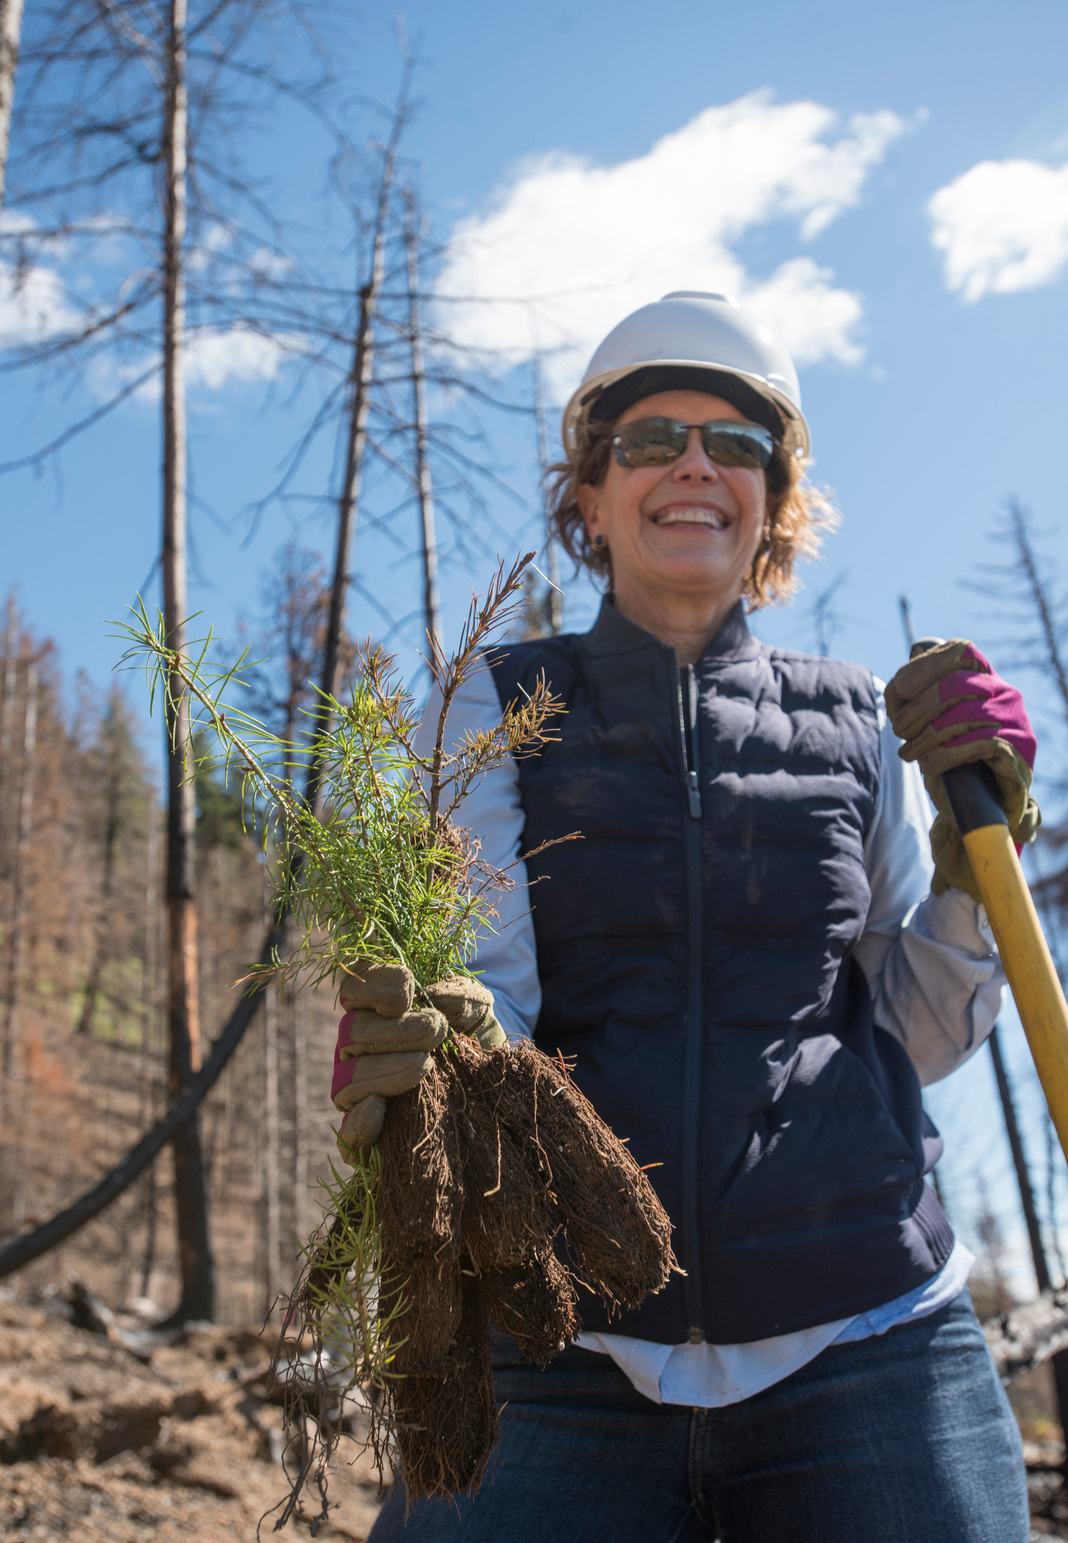 Kate planted saplings during a 2018 Board of Trustees retreat near Roslyn, Washington. Photo by Hannah Letinich.